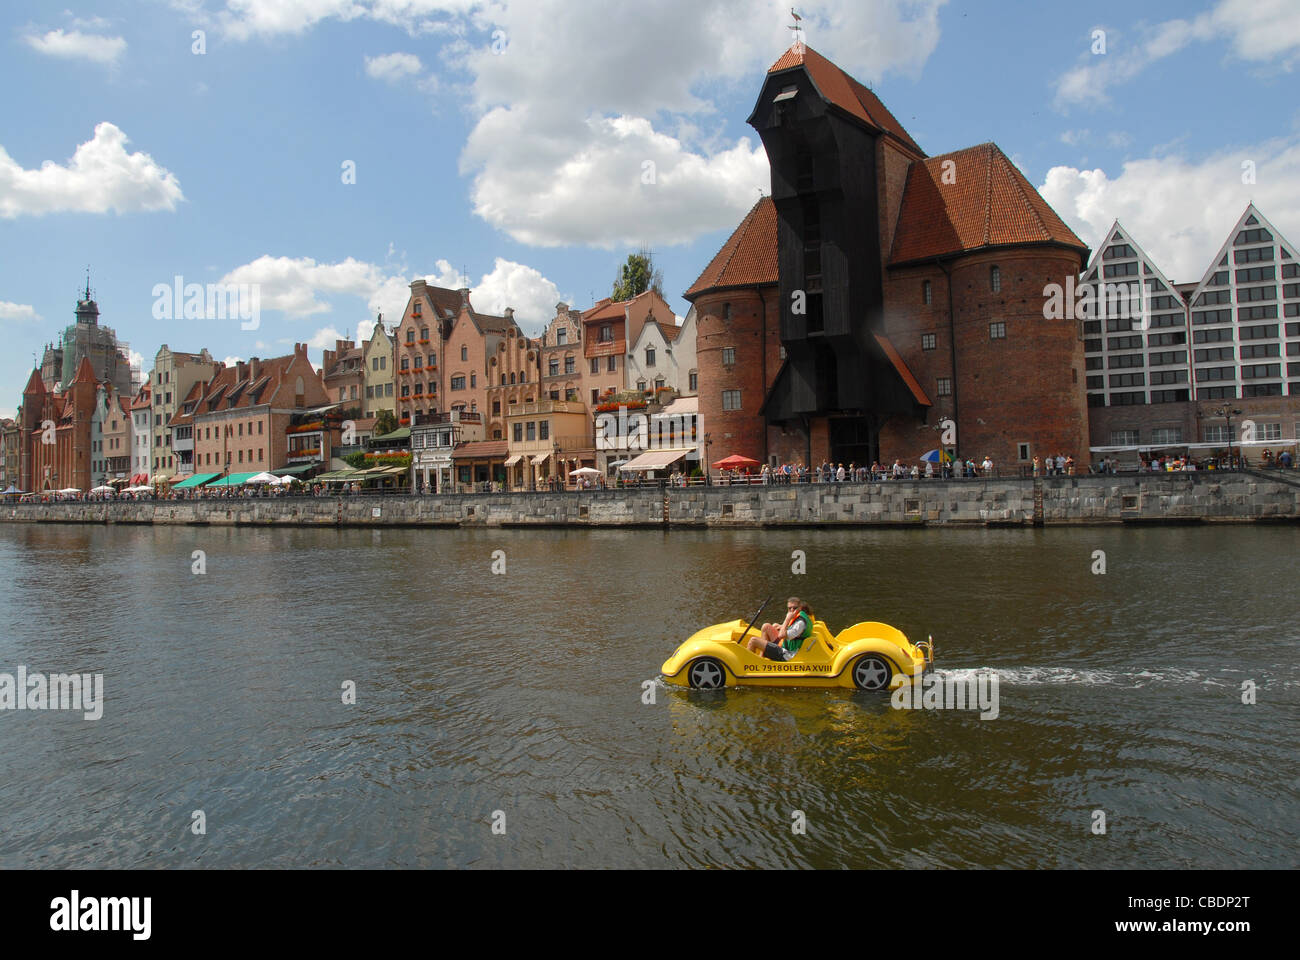 View from Oliwianka towards Stare Miasto, the old town of Gdansk, Danzig, with car-shaped fun boat on the Motlawa - Stock Image